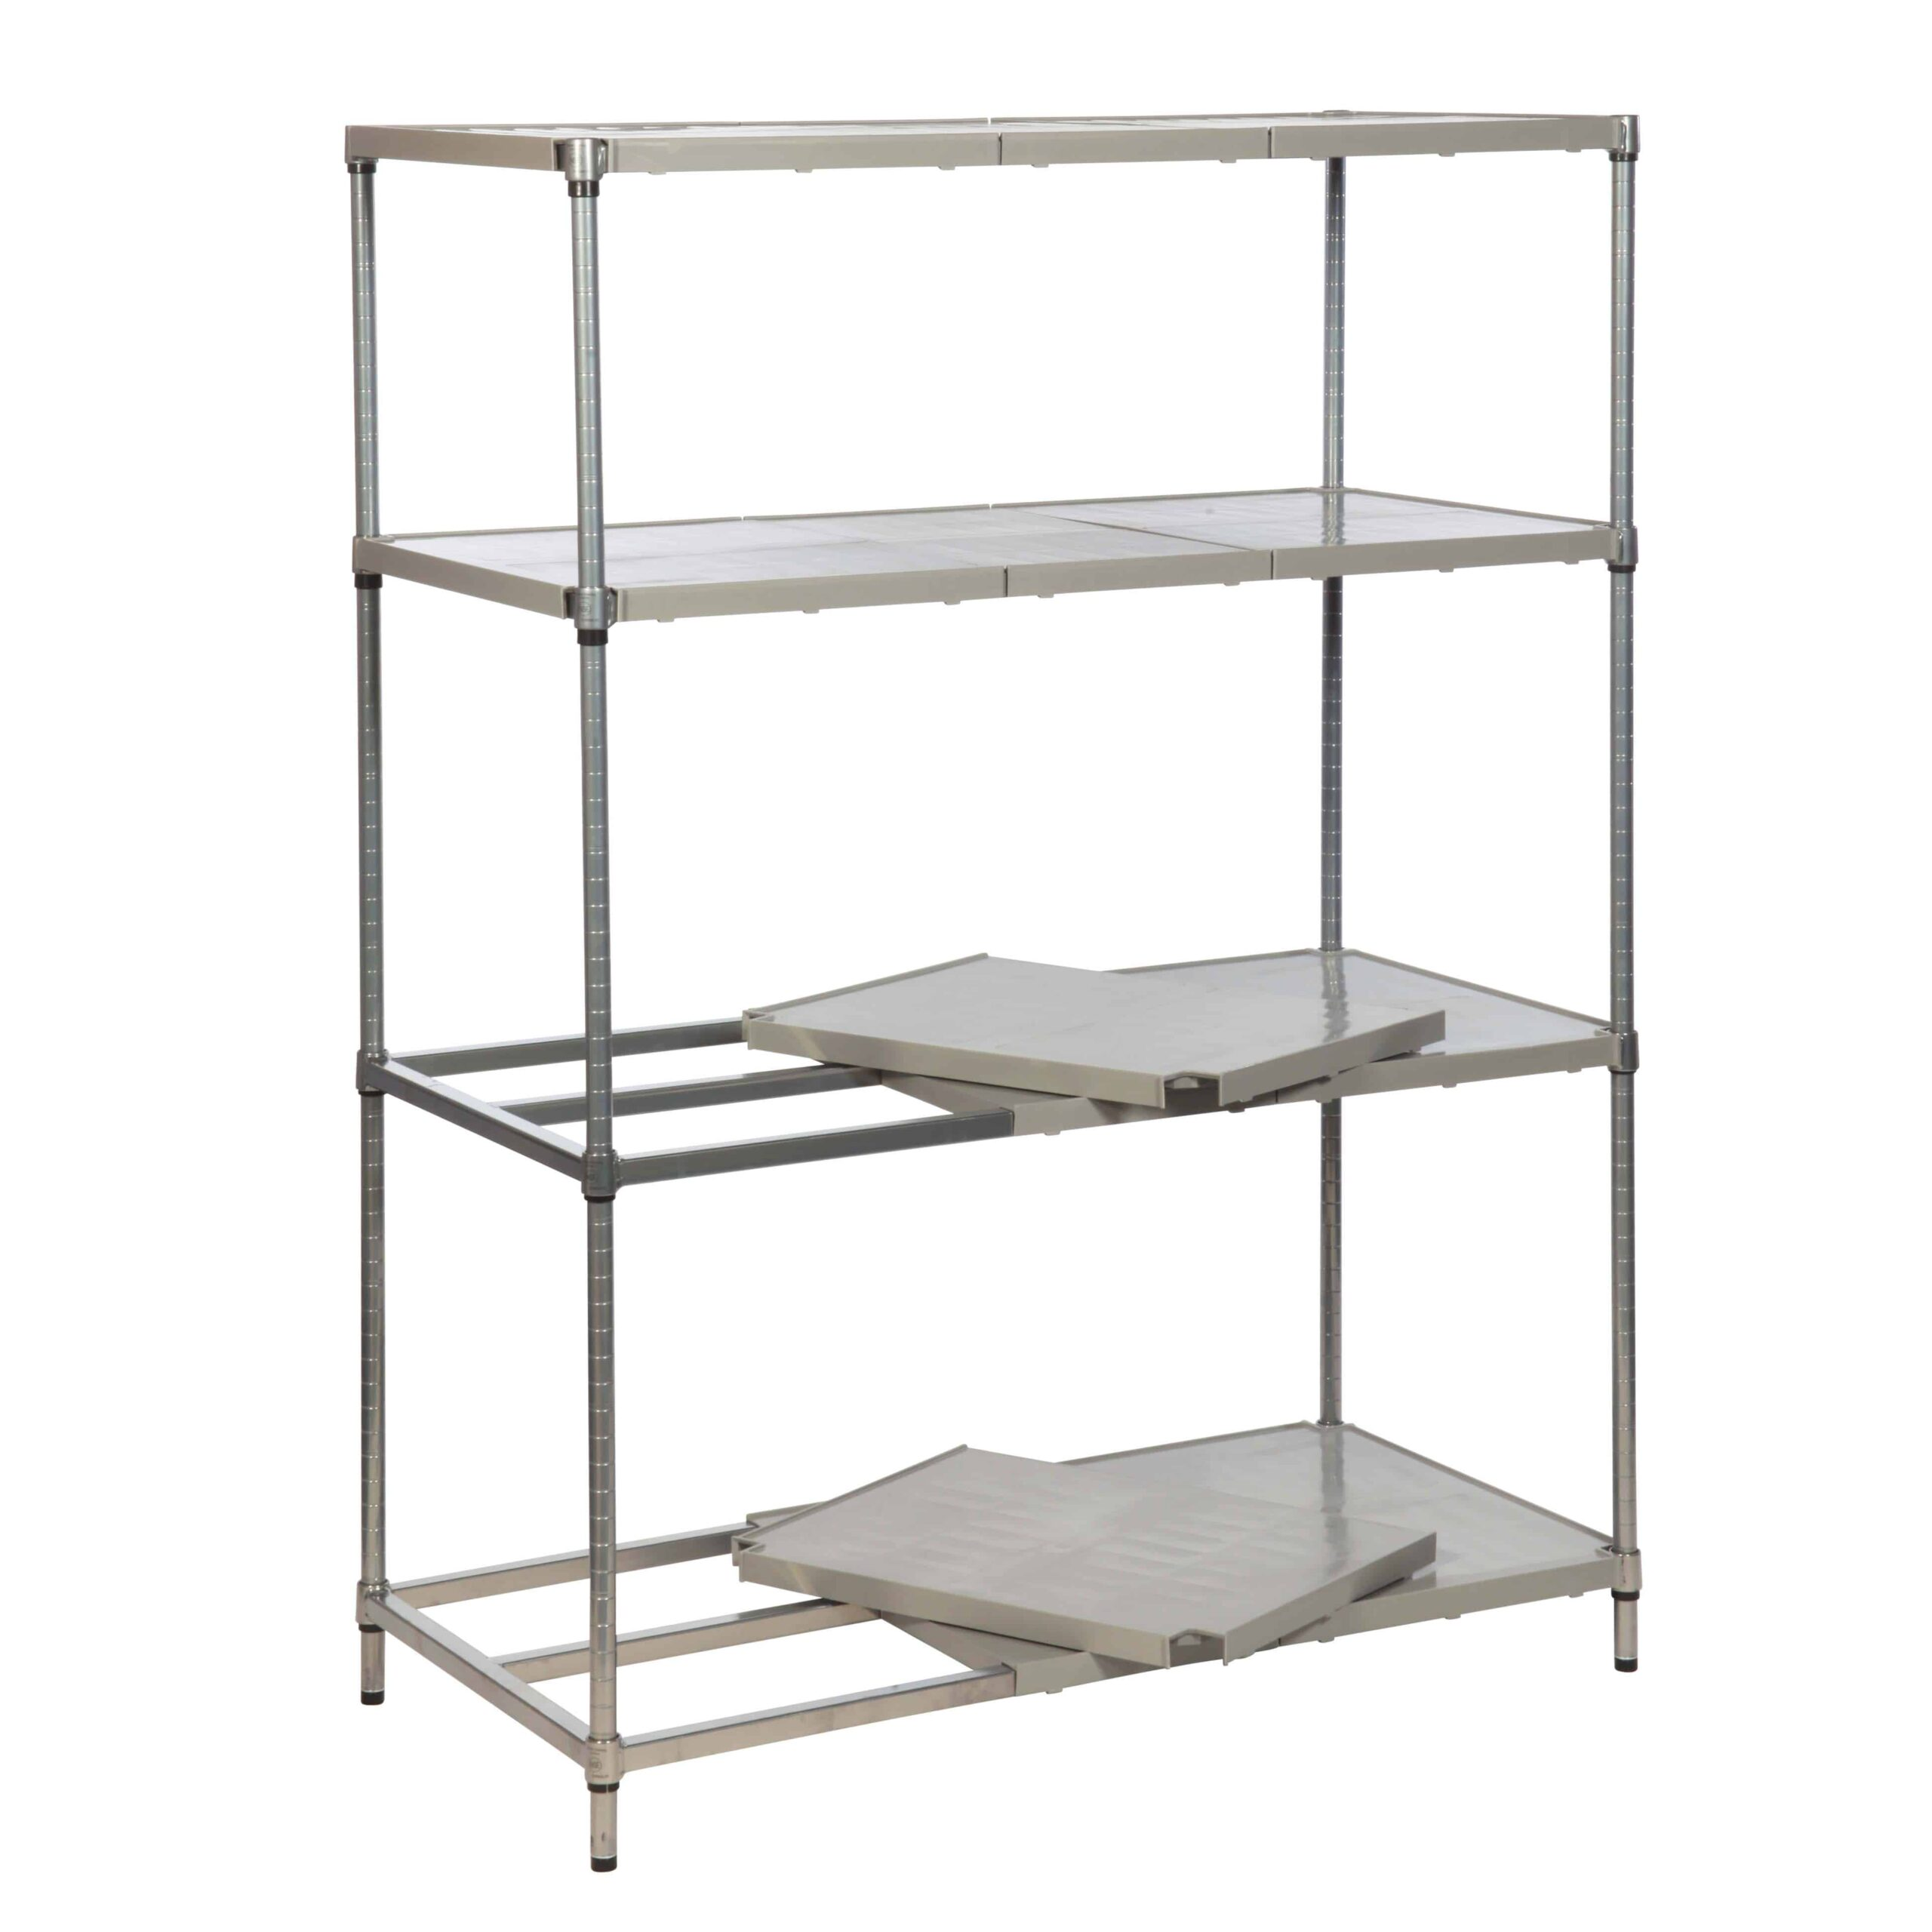 Eclipse Plastic Plus Polymer Shelving Racks